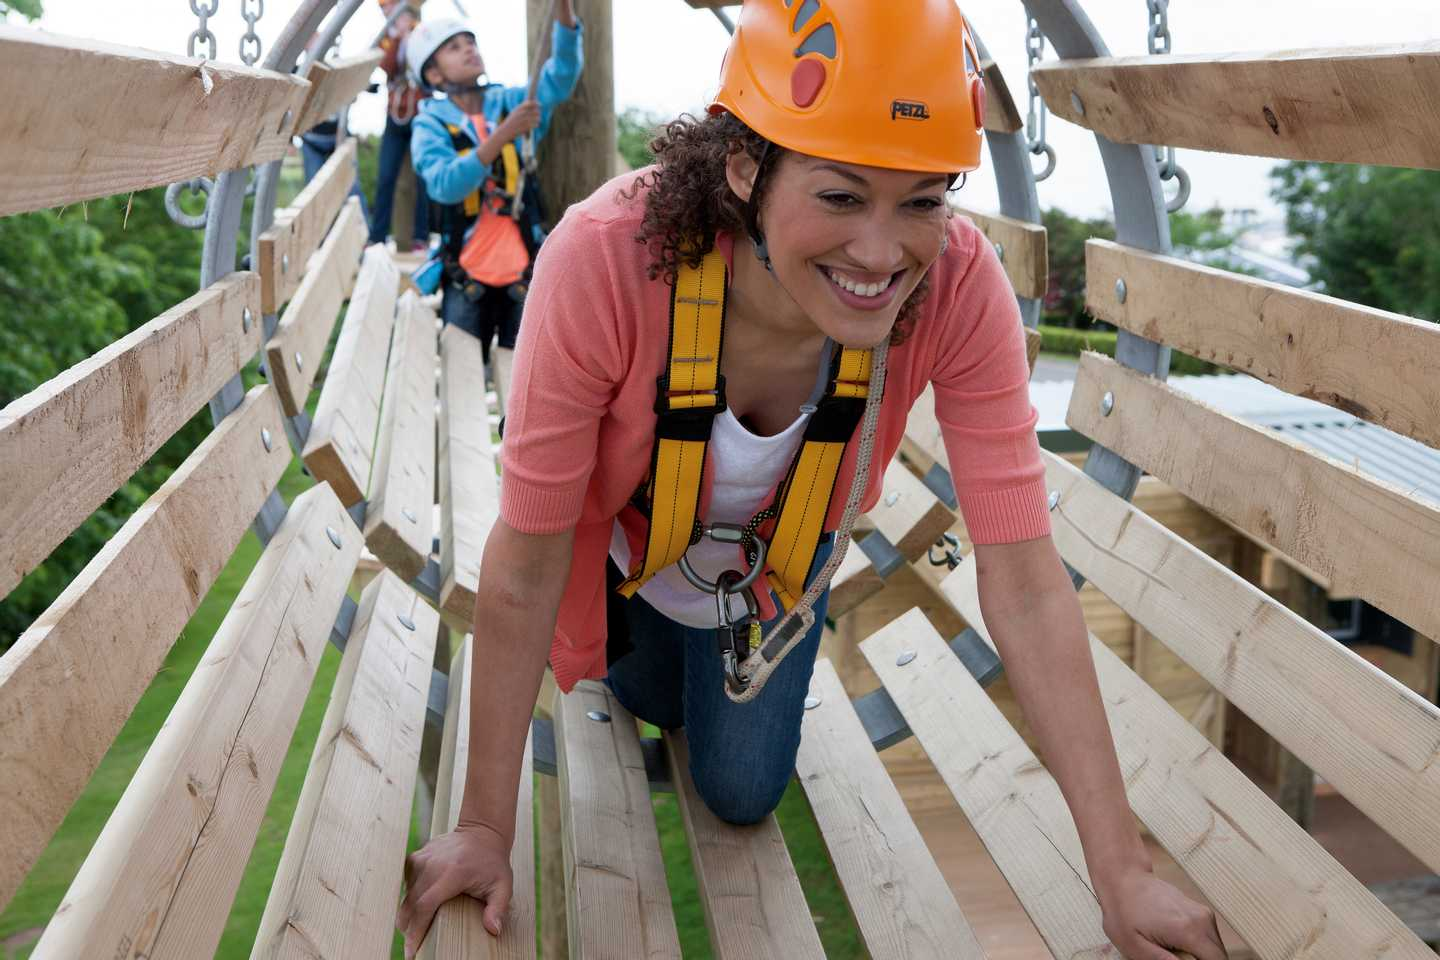 A woman smiling in safety gear crawling through an Aerial Adventure course that is suspended in the air at Devon Cliffs Holiday Park